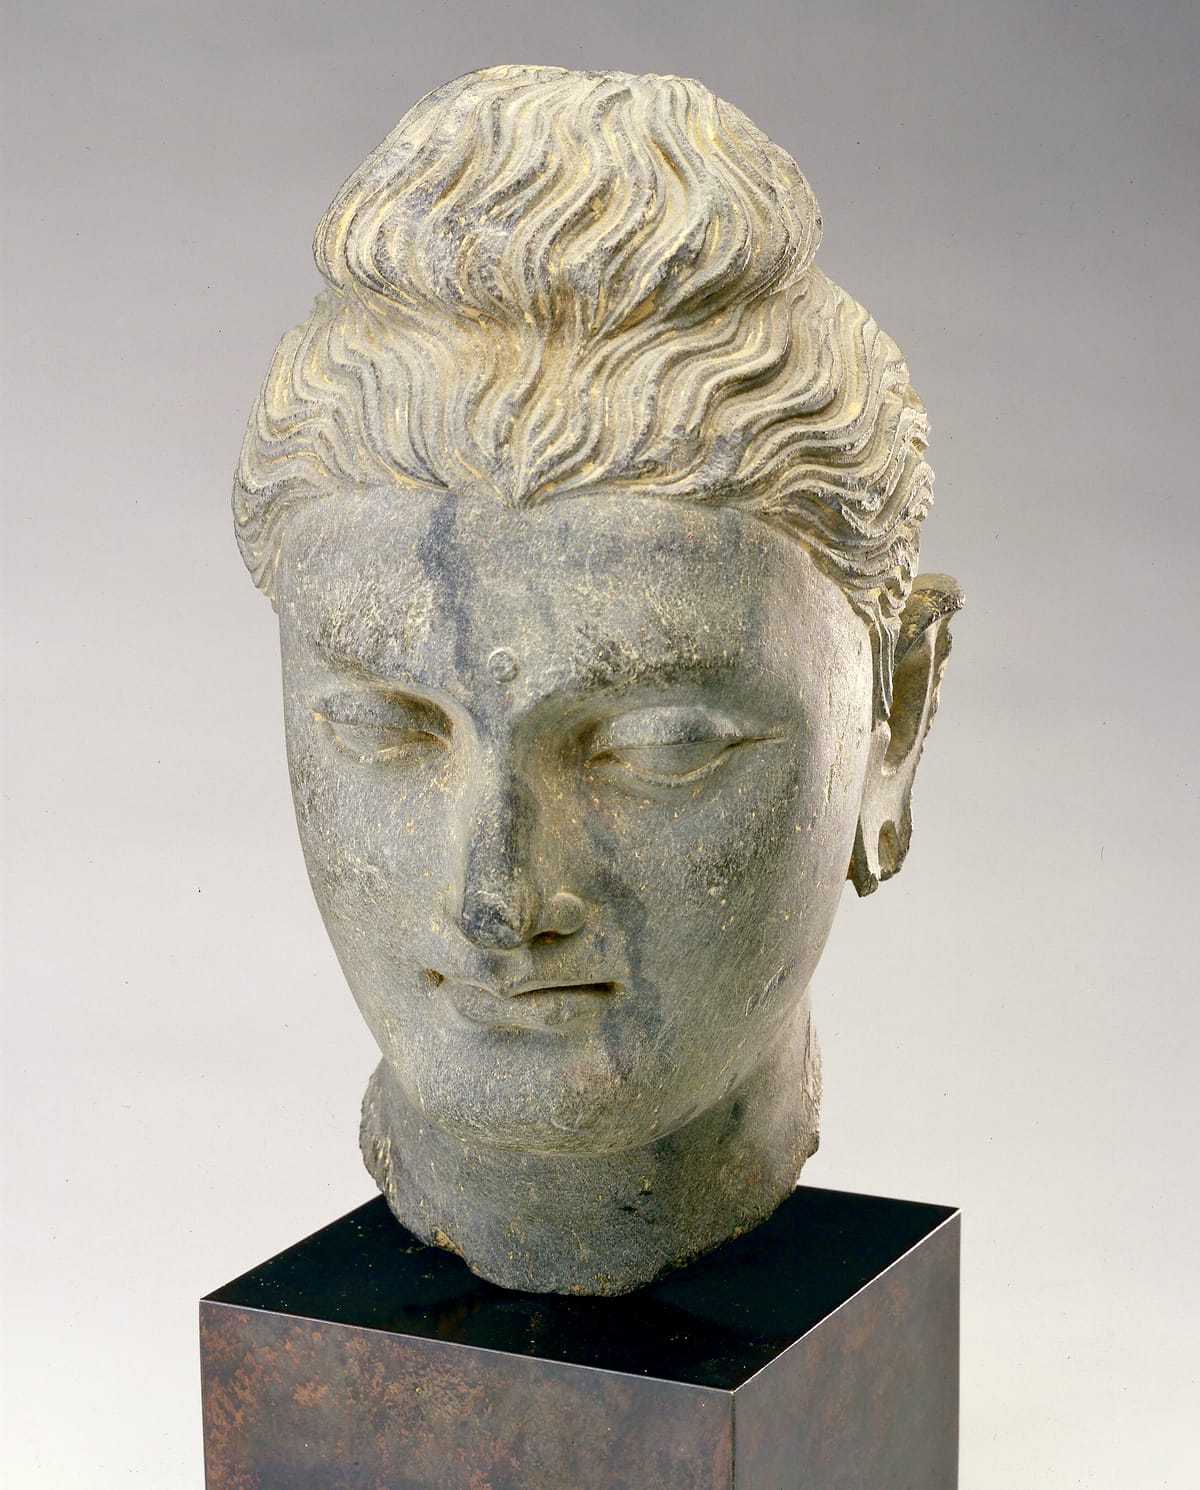 Sculpture of a Buddha head.